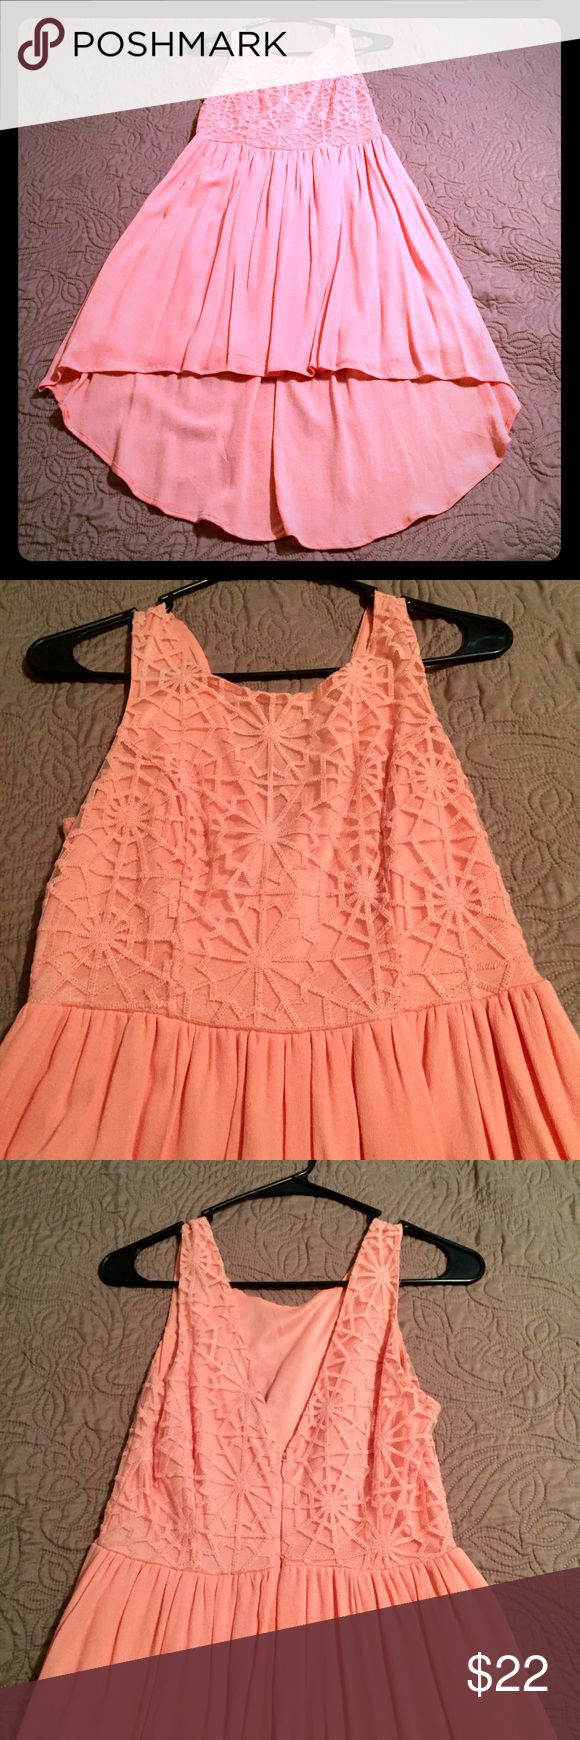 Pink dress with hi-lo hem Worn once to a Kentucky Derby party! Perfect for parties, showers, church, etc. from Francesca's, size S Francesca's Collections Dresses High Low